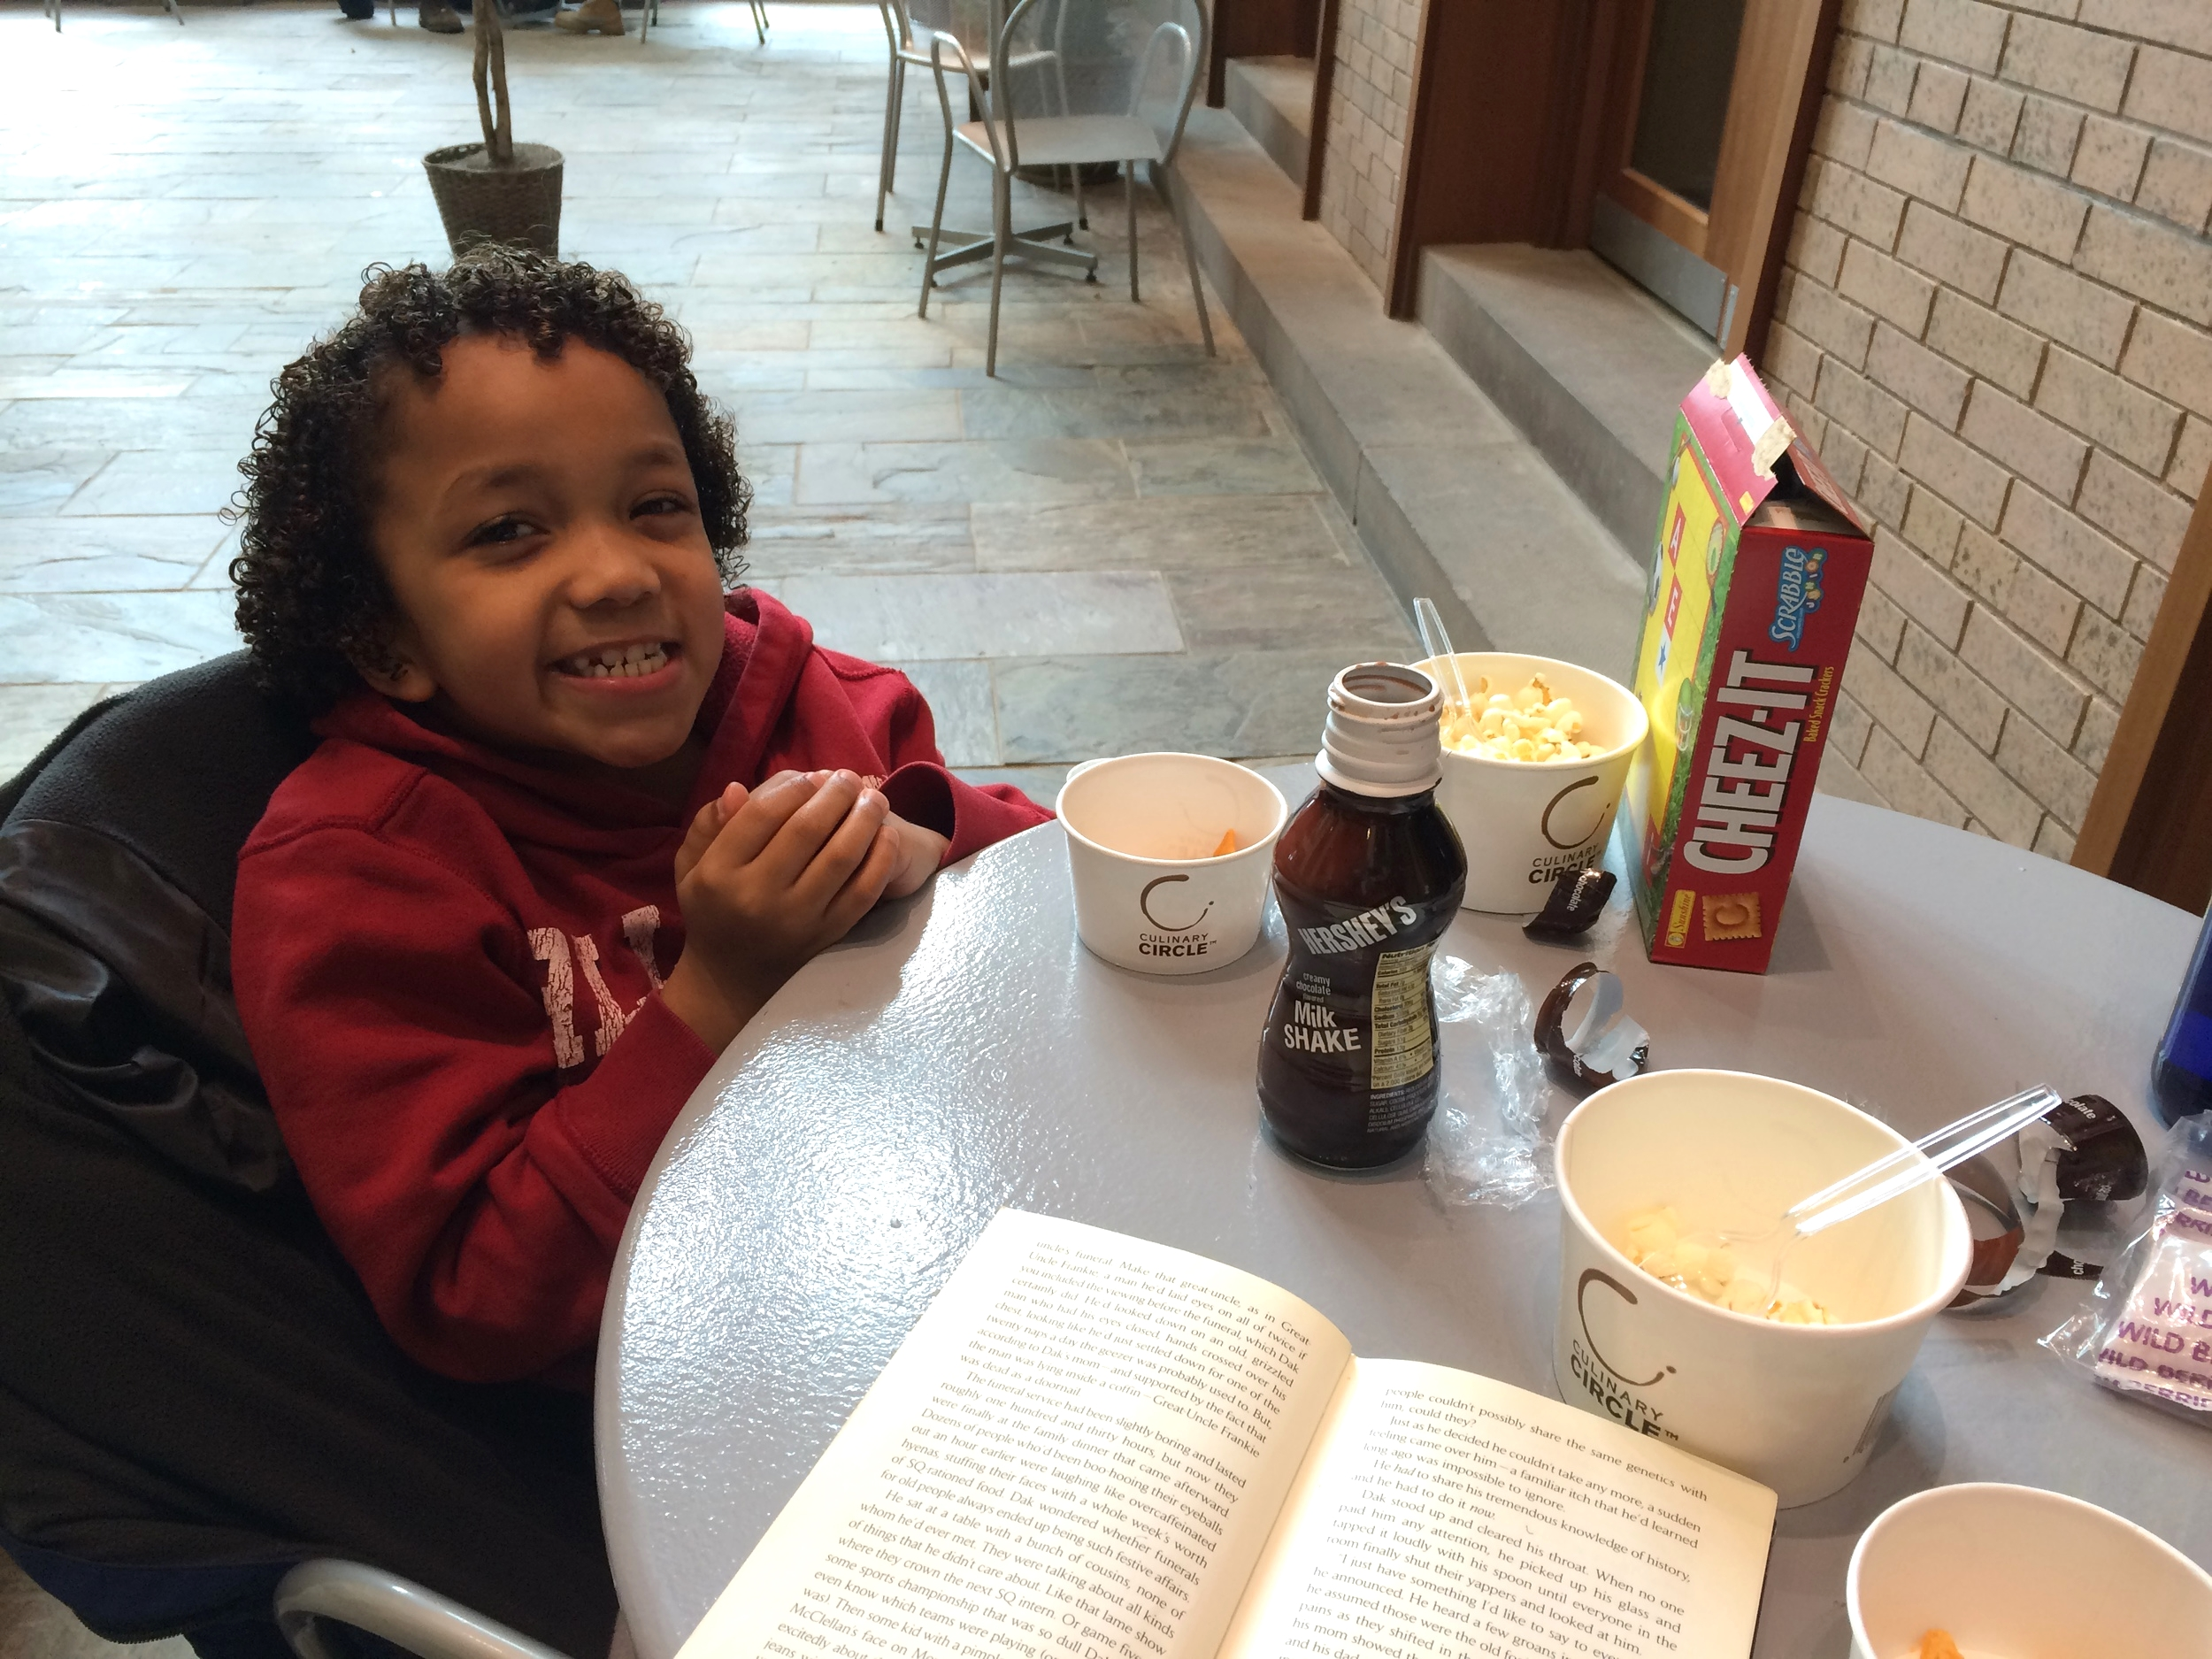 Eating snacks and reading at the local library